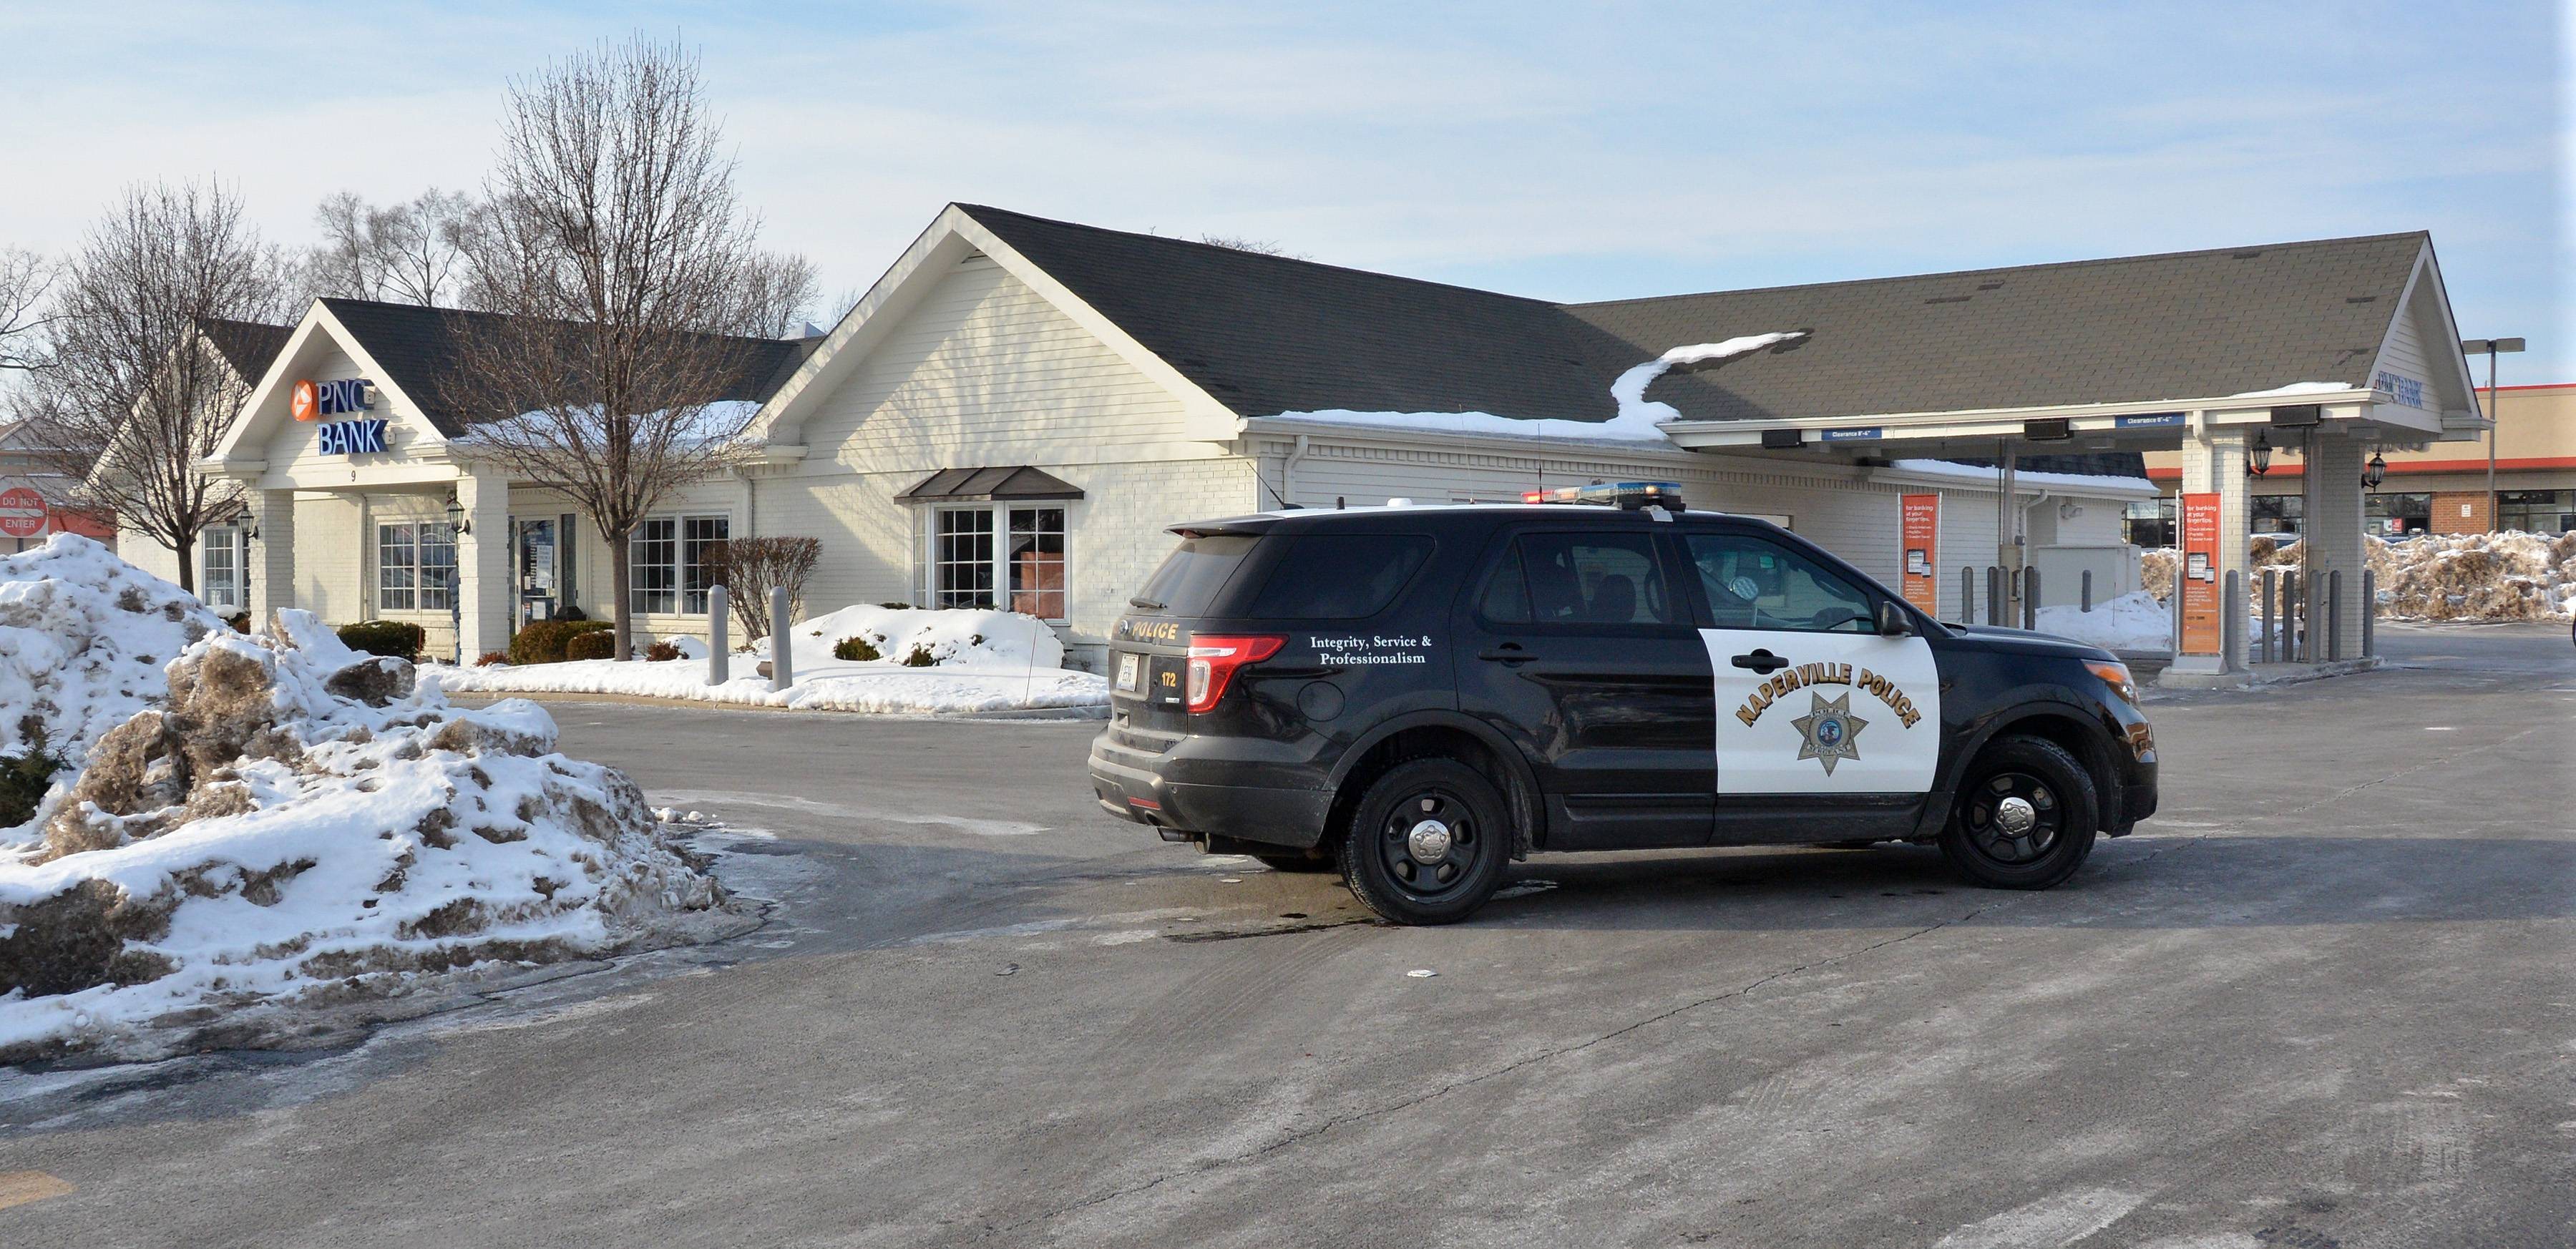 Kevin A. Johnson, 30, of Burnham was charged Saturday morning in federal court with one count of felony bank robbery. He is accused of robbing this PNC Bank branch about 2:30 p.m. Friday at 9 E. Ogden Ave. in Naperville.